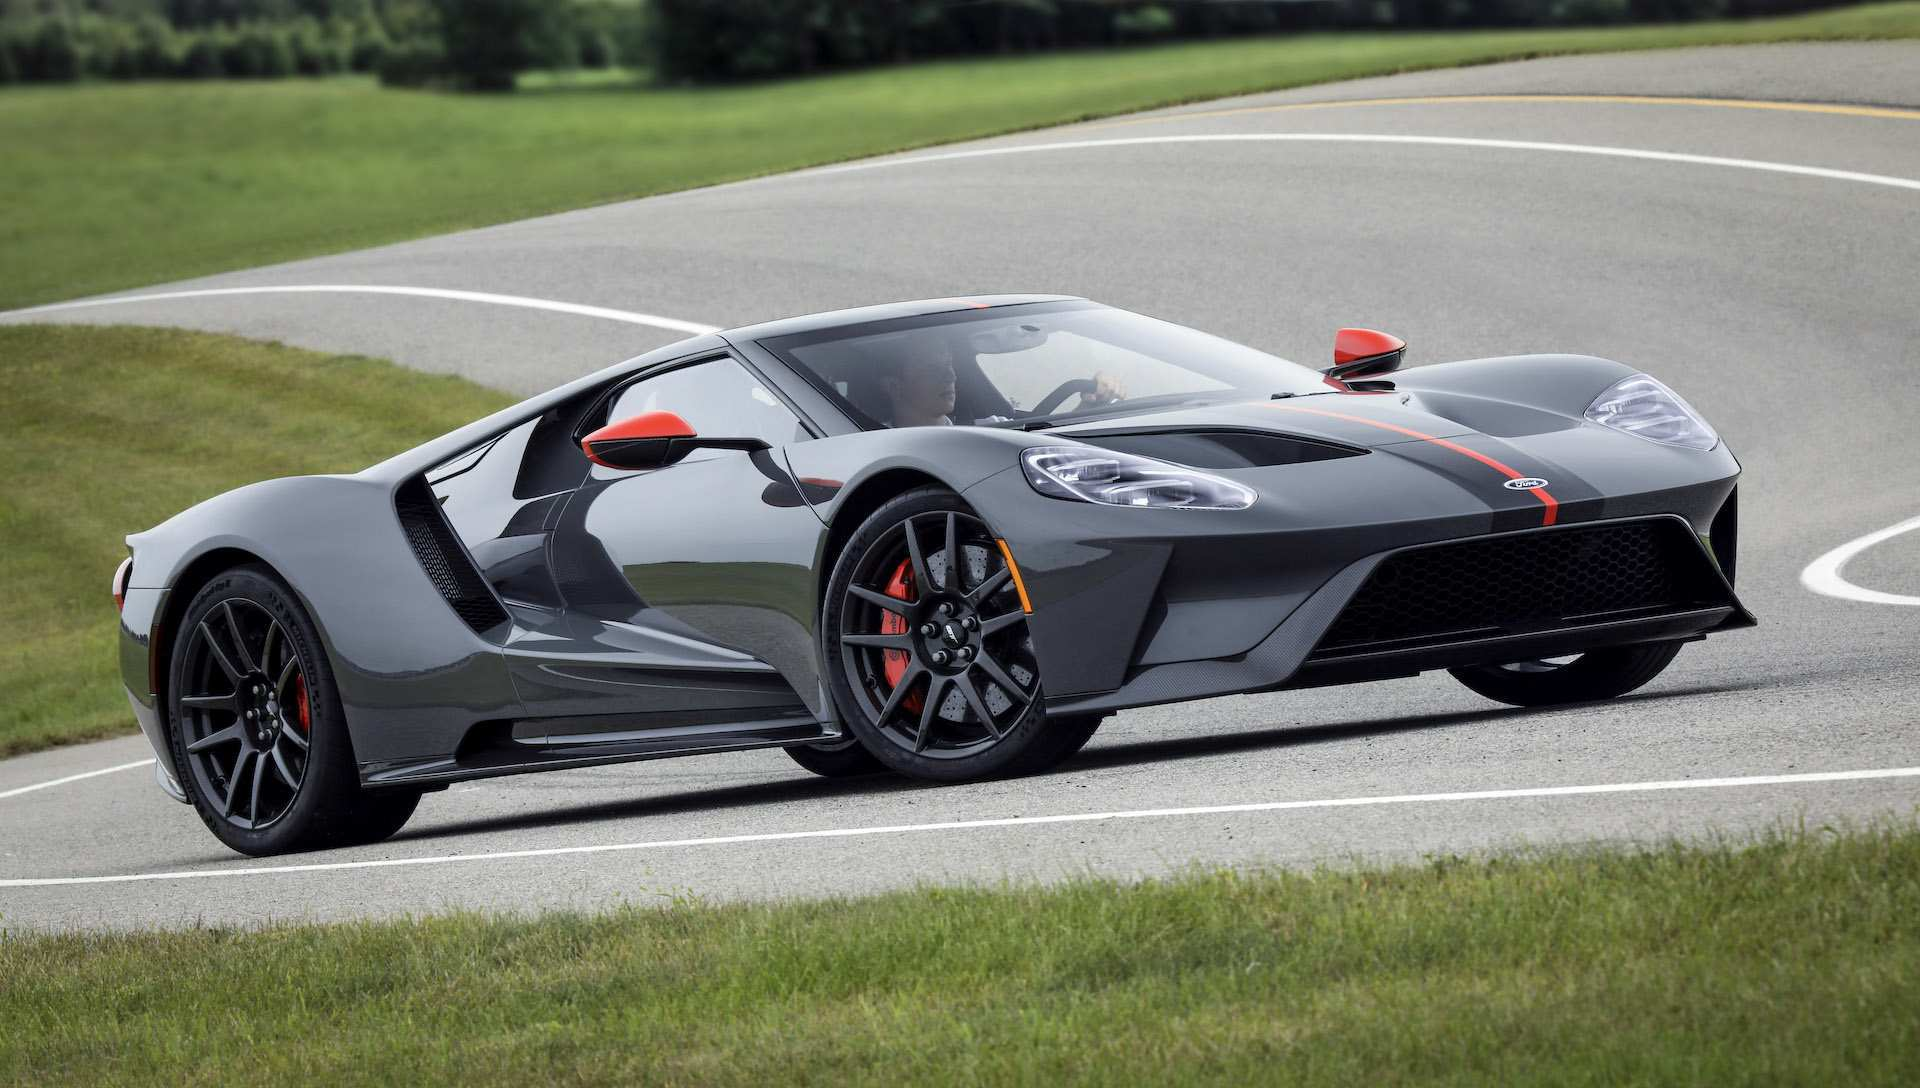 49 A 2020 Ford Gt Supercar Release Date And Concept